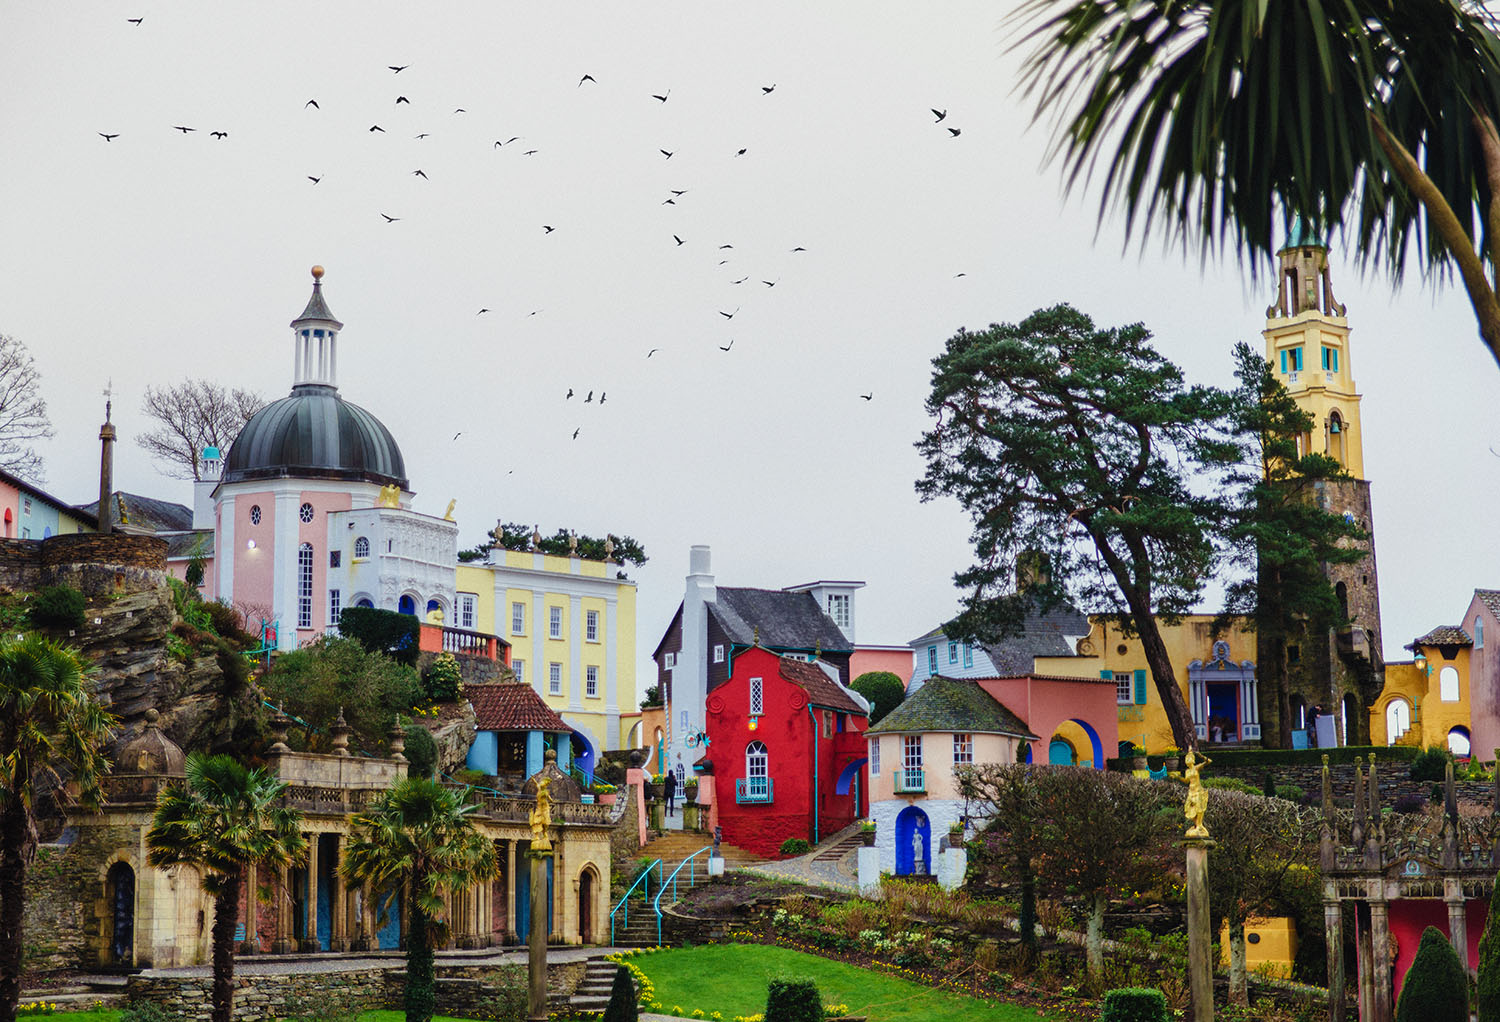 Portmeirion Village - Travel guide to a Welsh Fantasy Village Full of Surprises